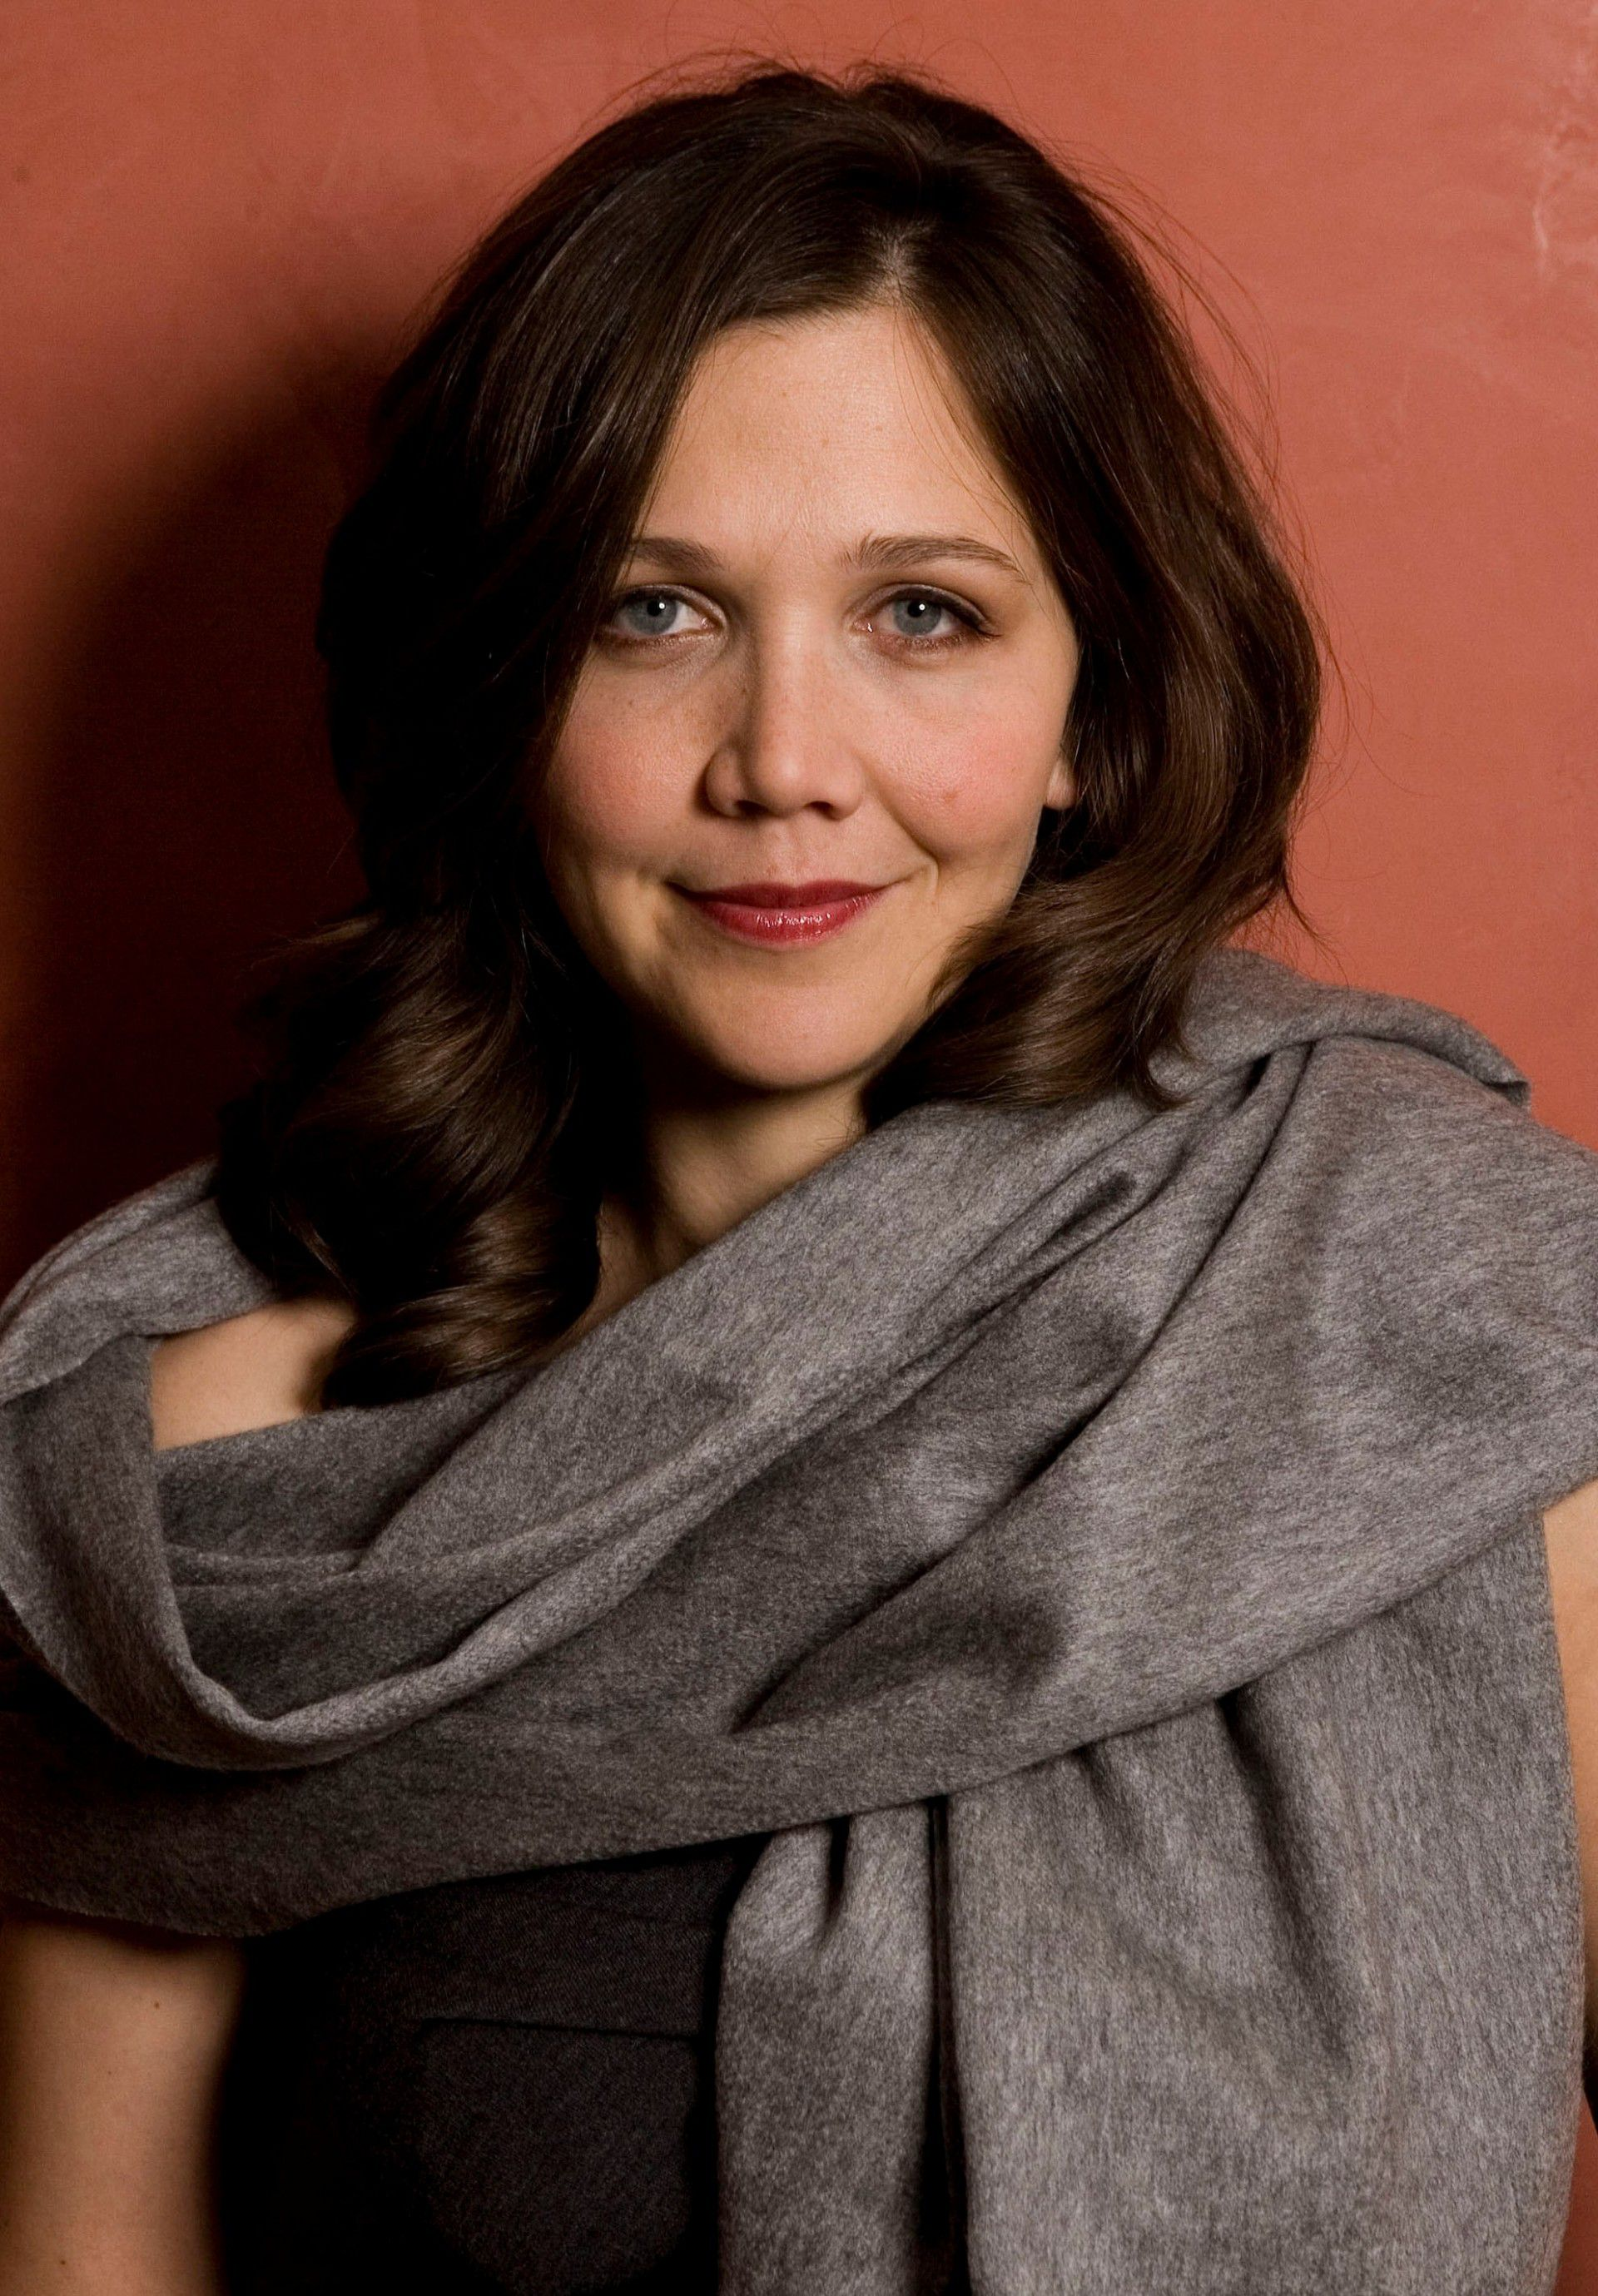 Awesome Maggie Gyllenhaal HQ Wallpaper | Full HD Pictures Maggie Gyllenhaal